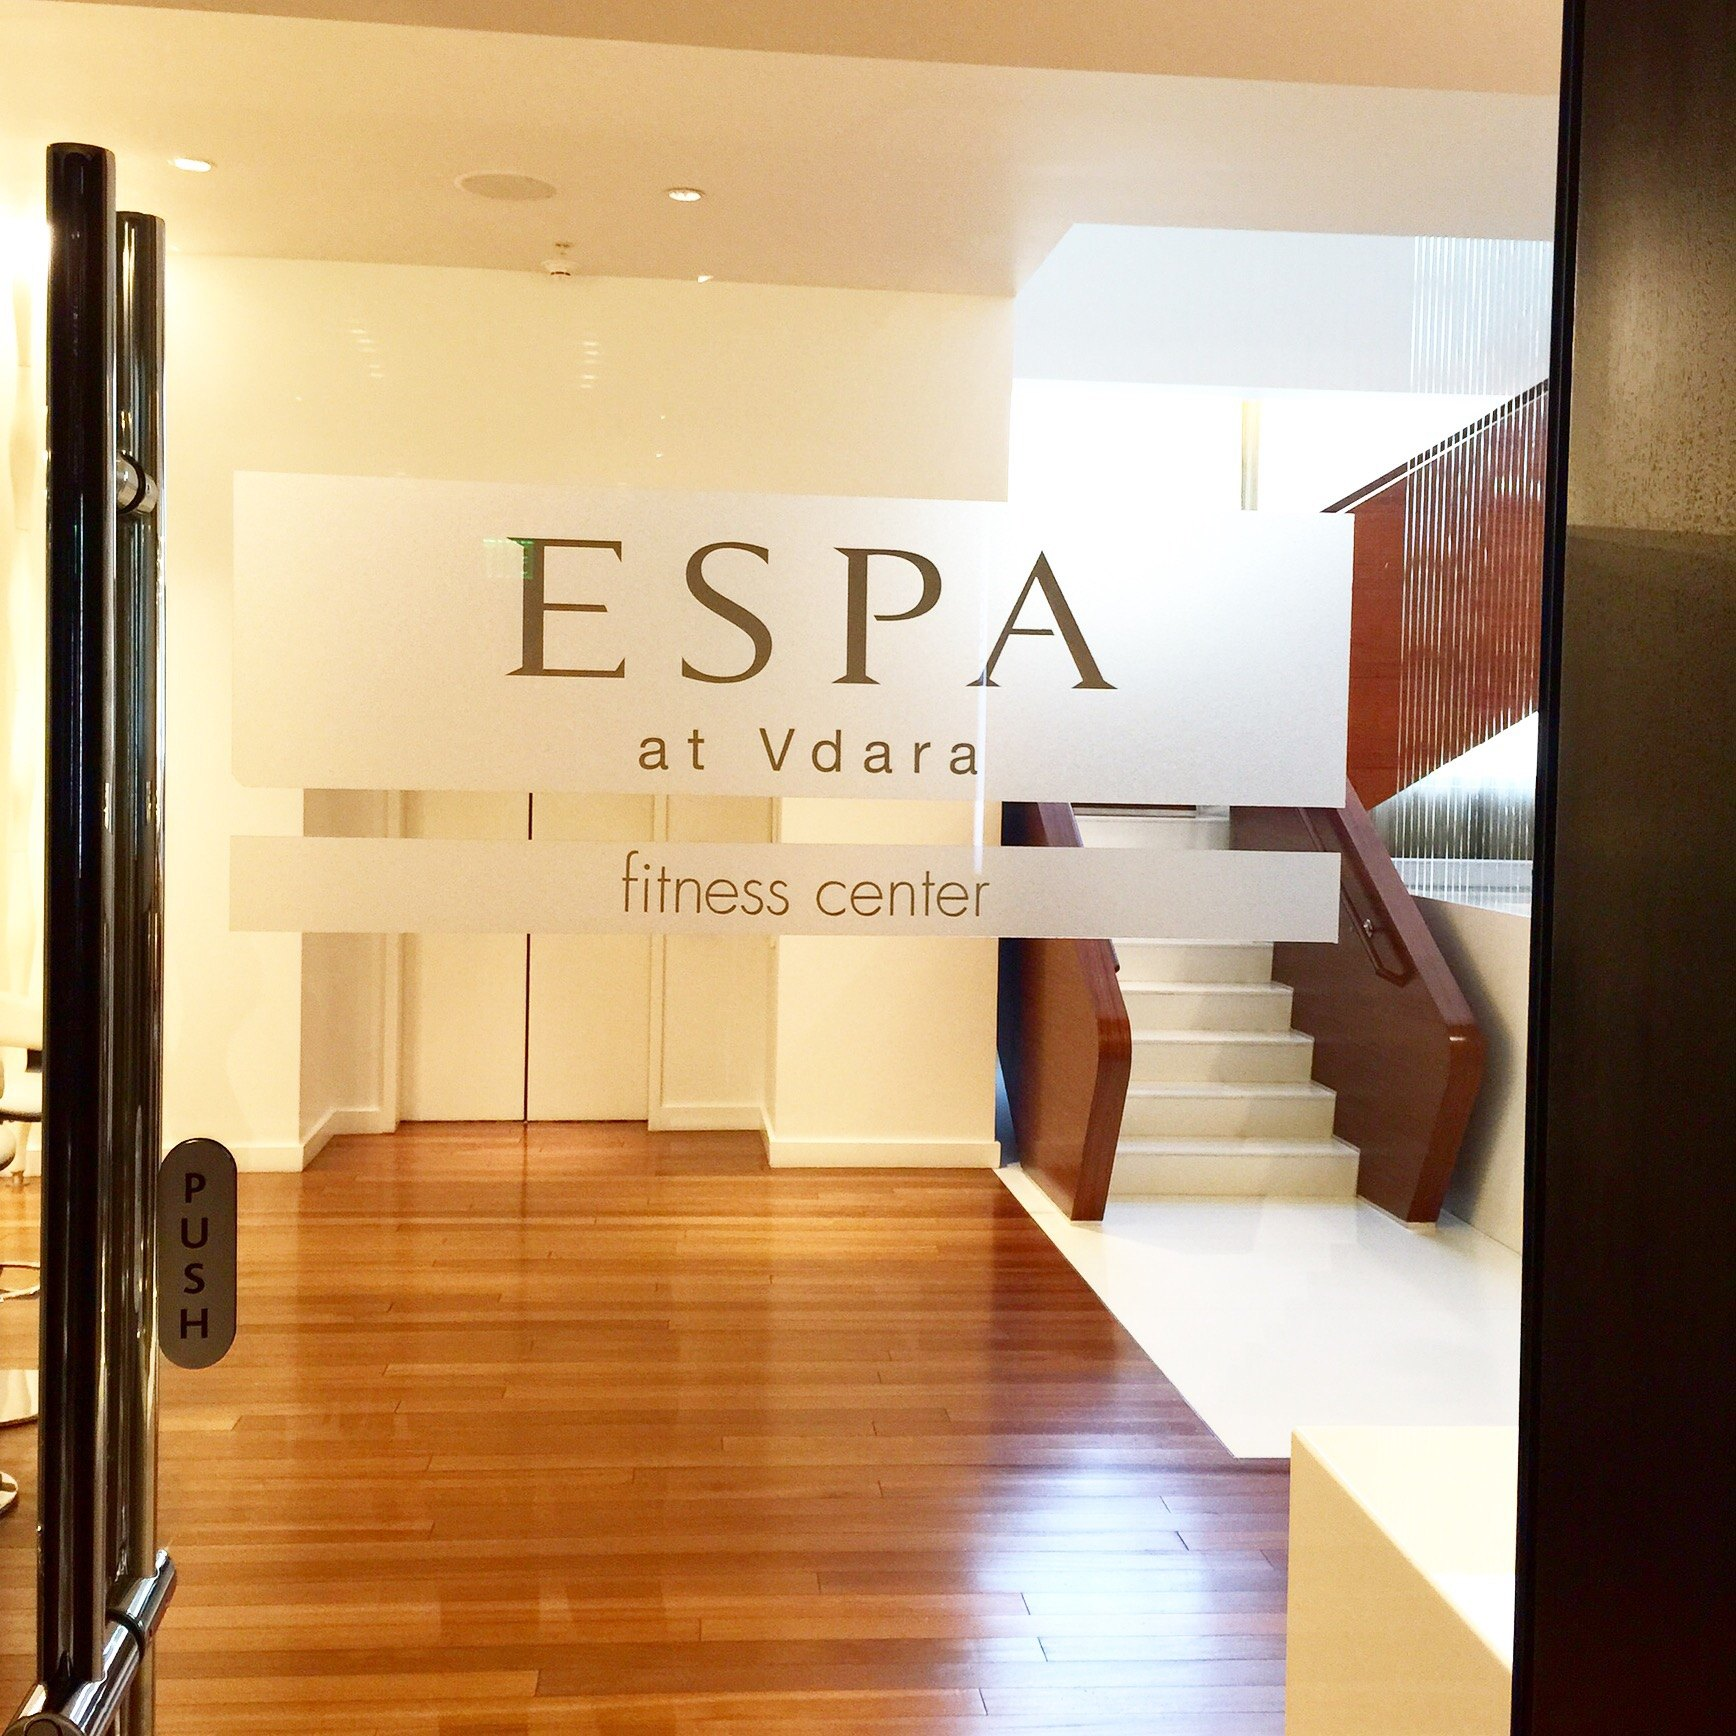 espa at vdara fitness center